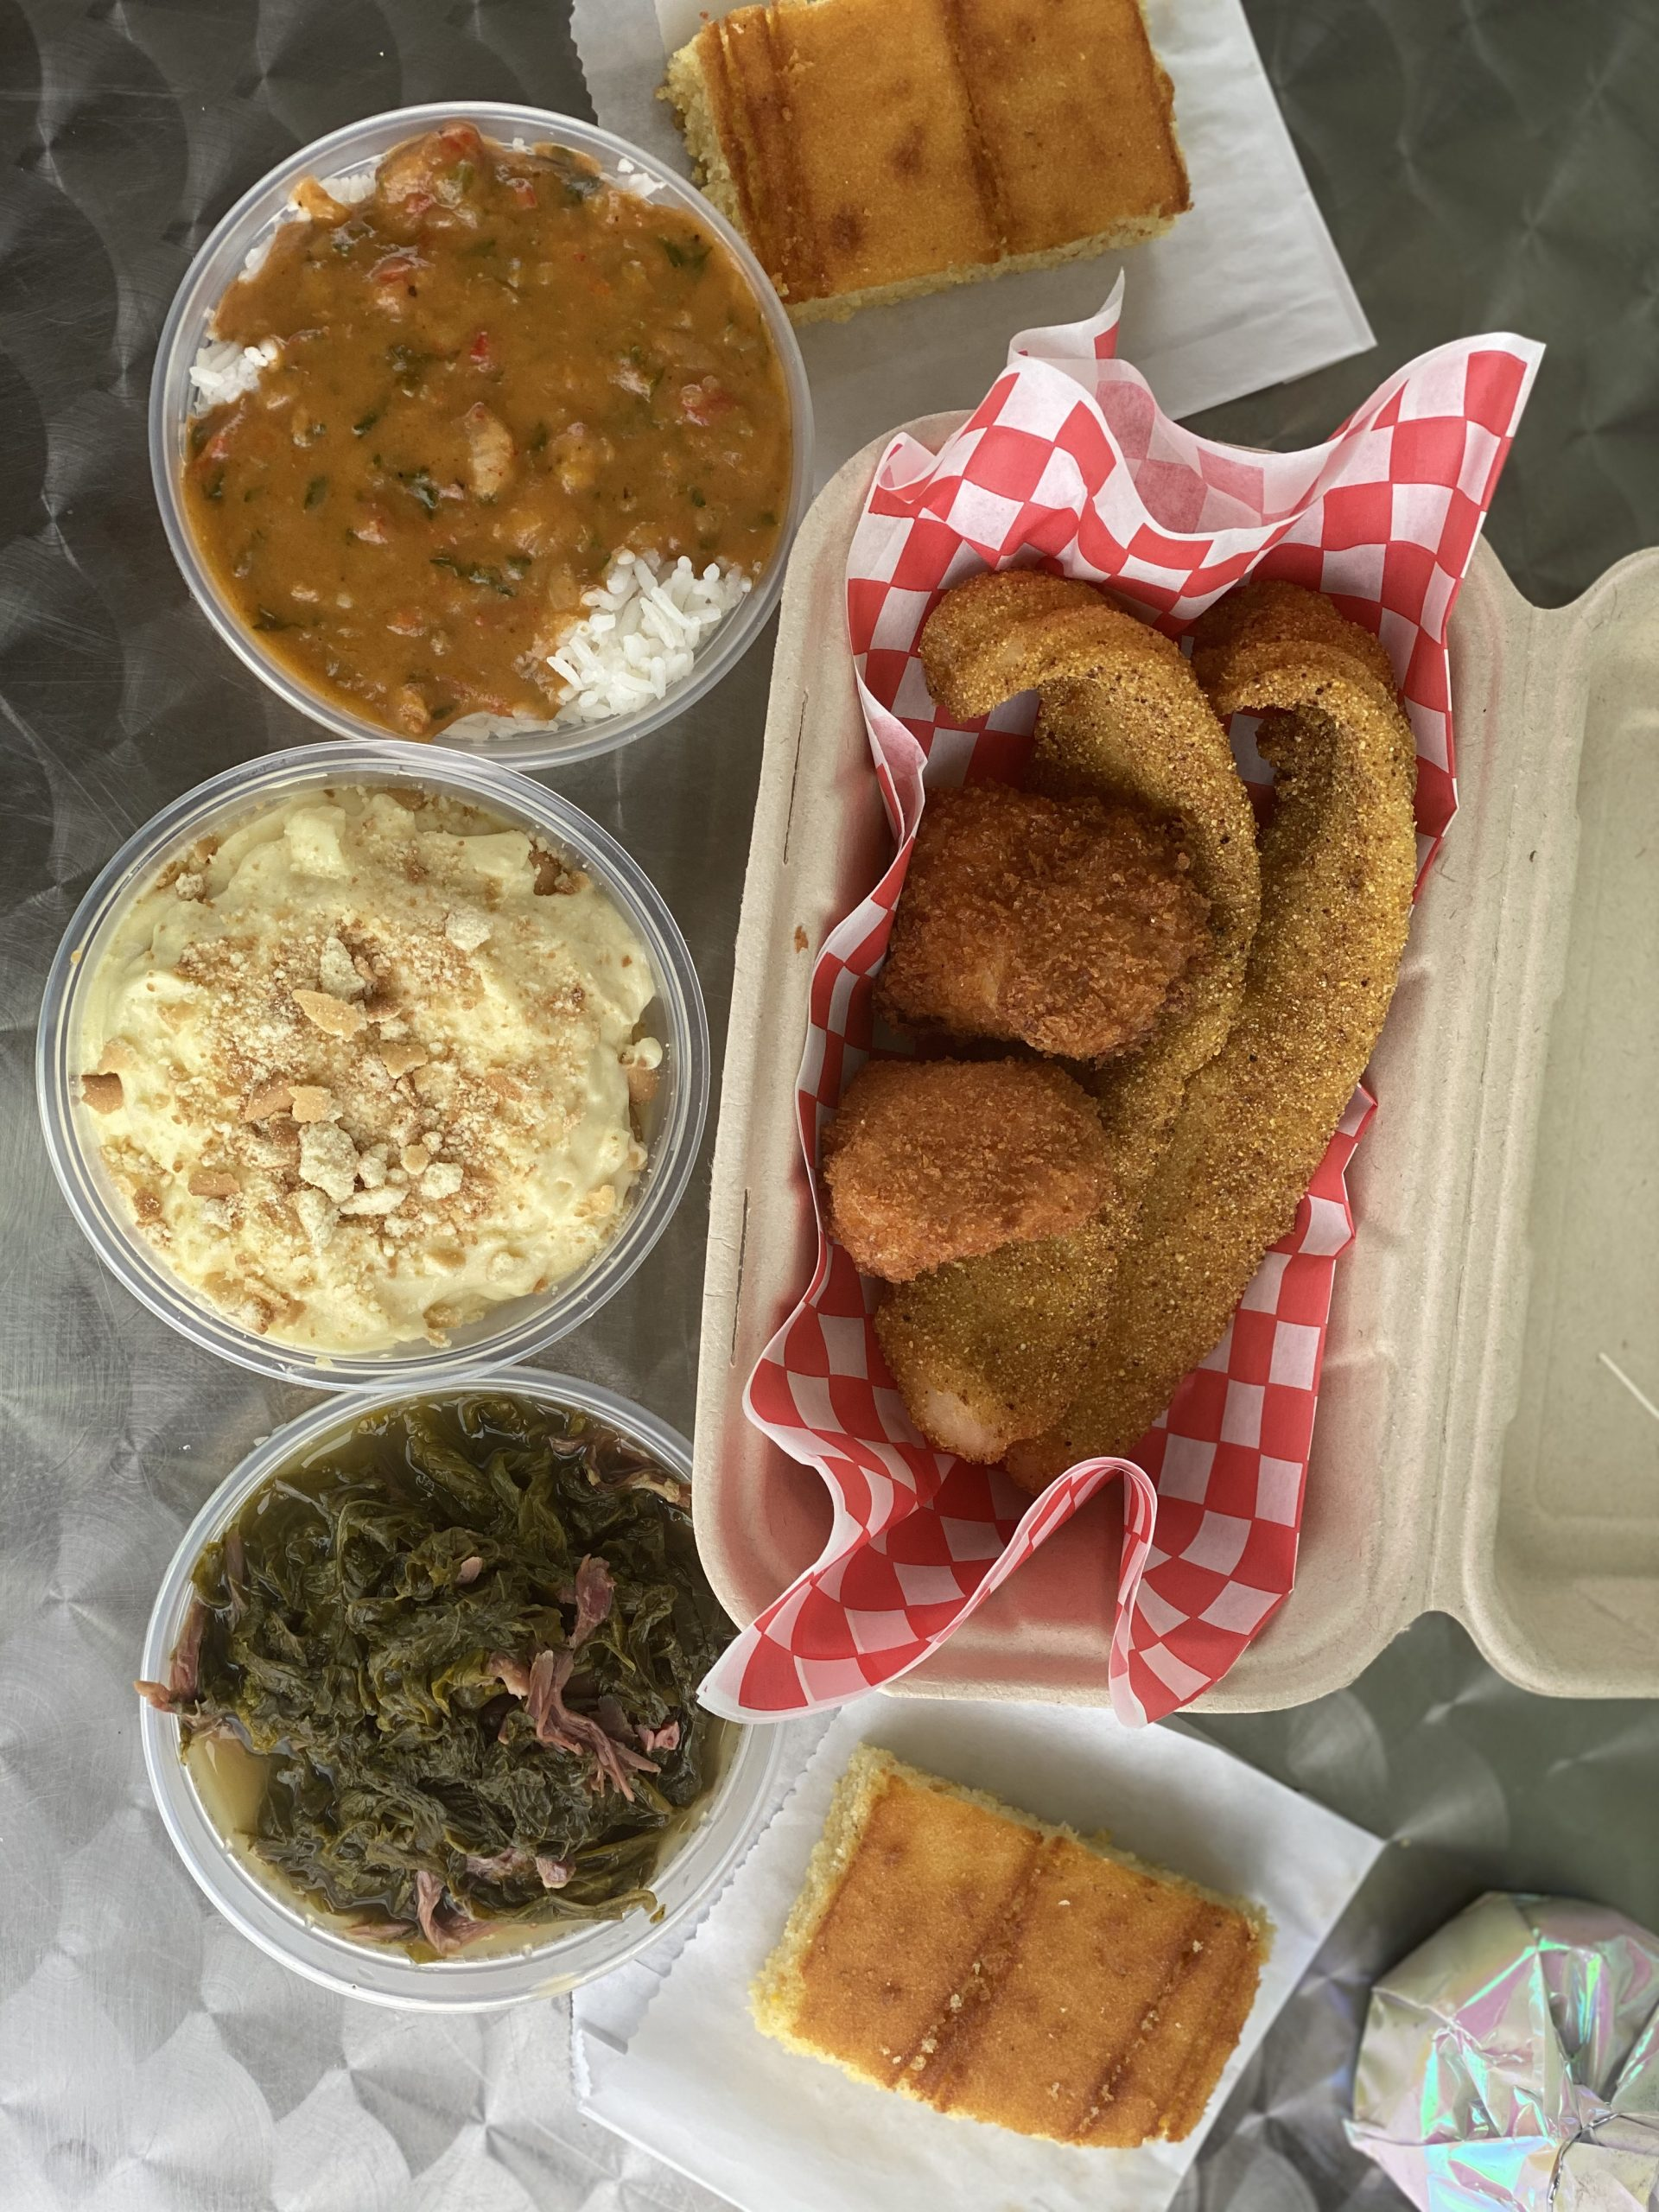 Photo: soul food and sides from Selena's Custom Kitchen